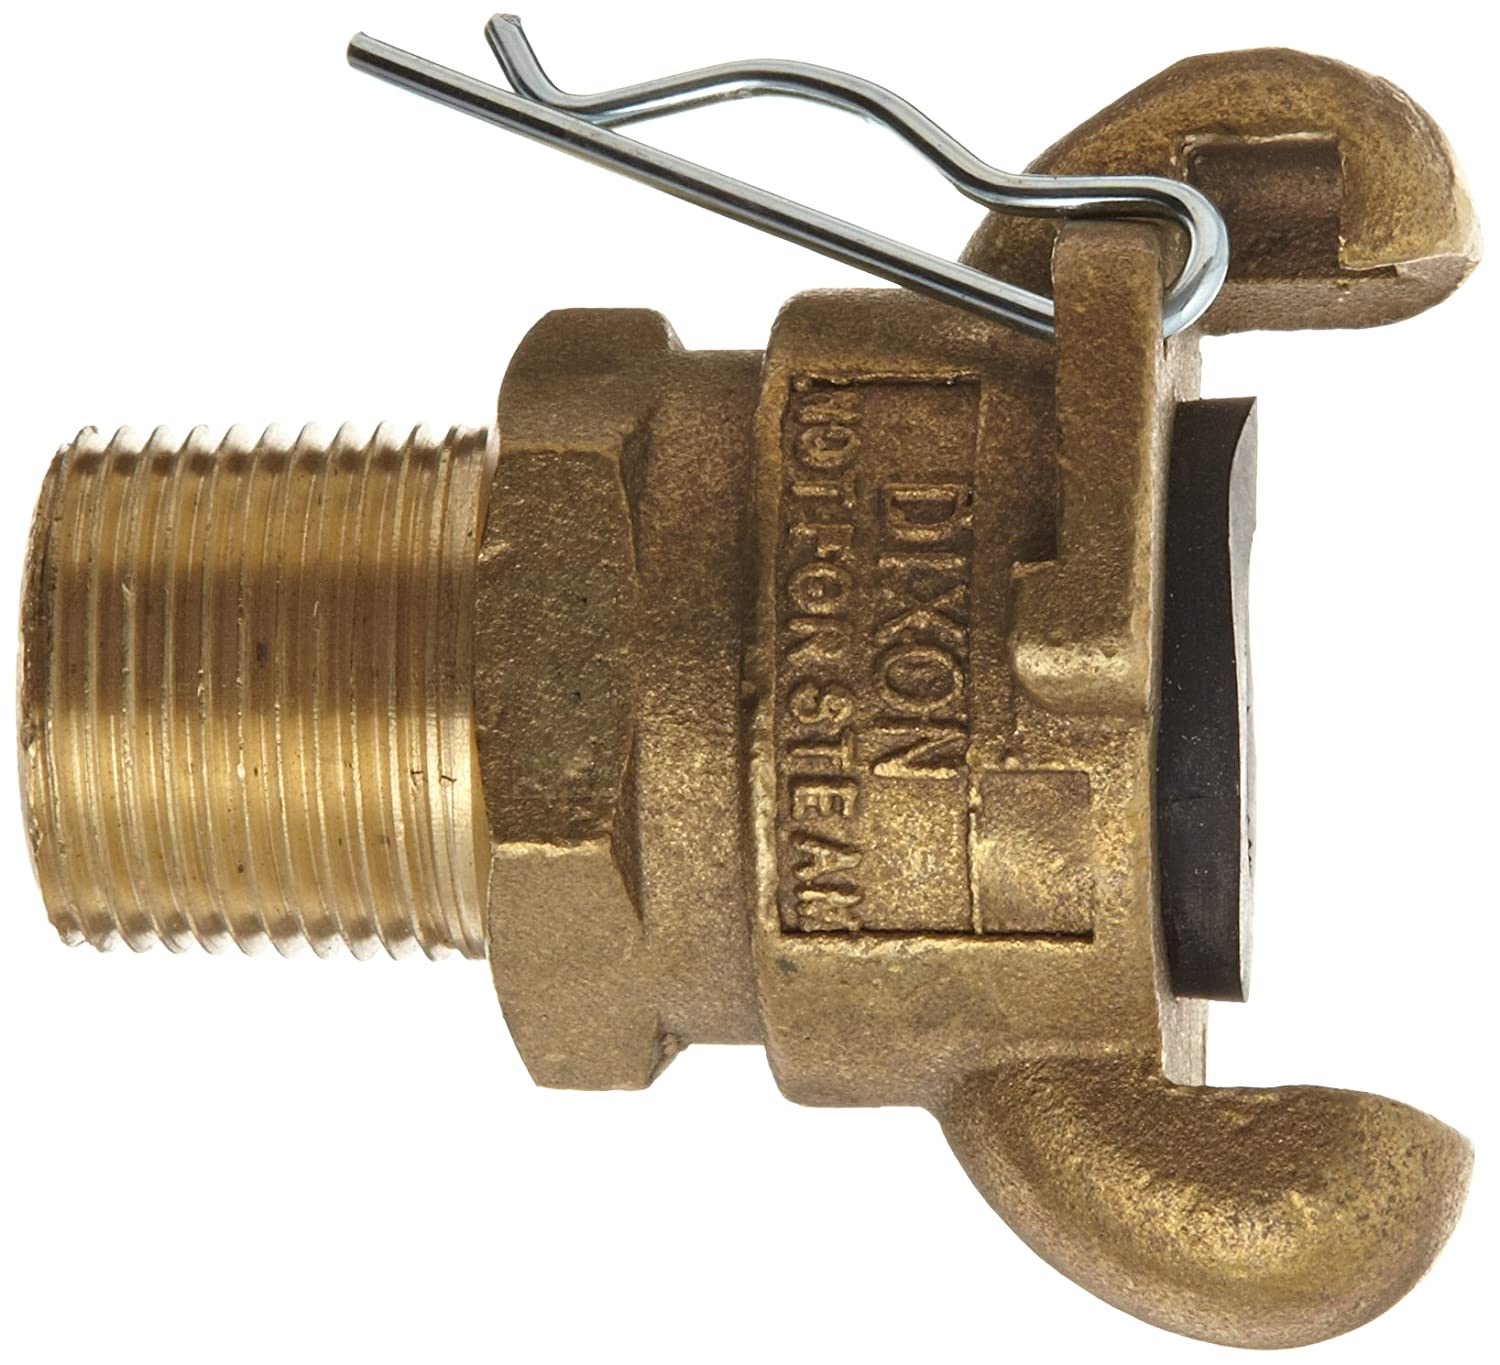 1 NPT Male Dixon Air King AB12 Brass Air Hose Fitting 2 Lug Universal Coupling